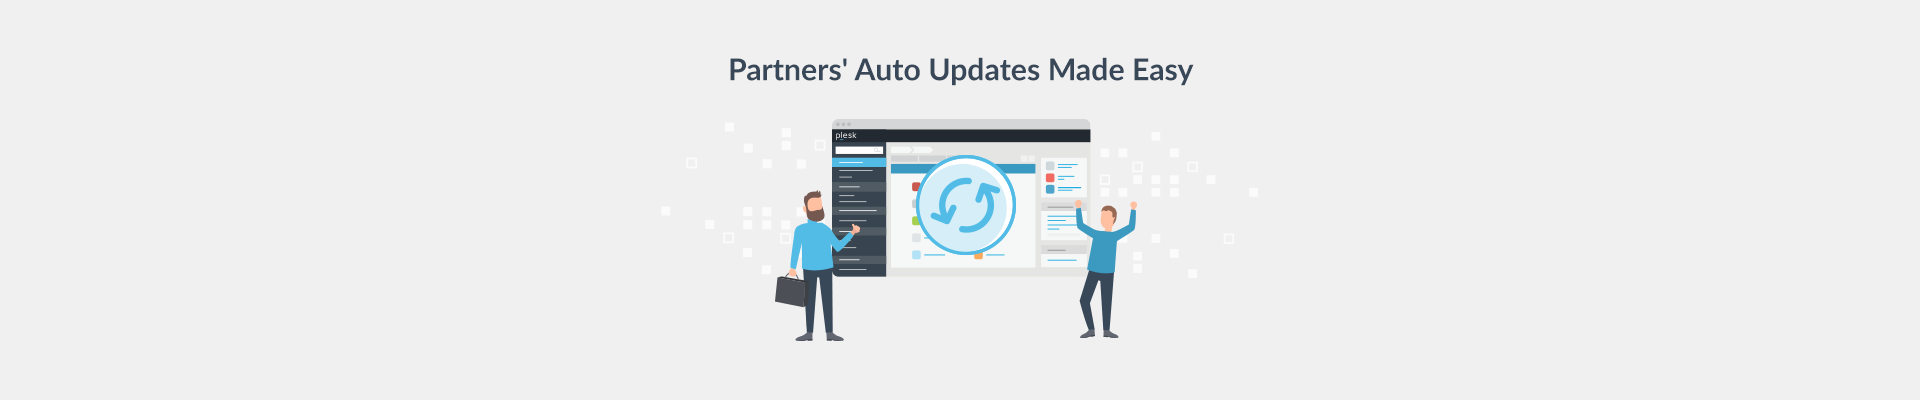 Auto Updates for Partners